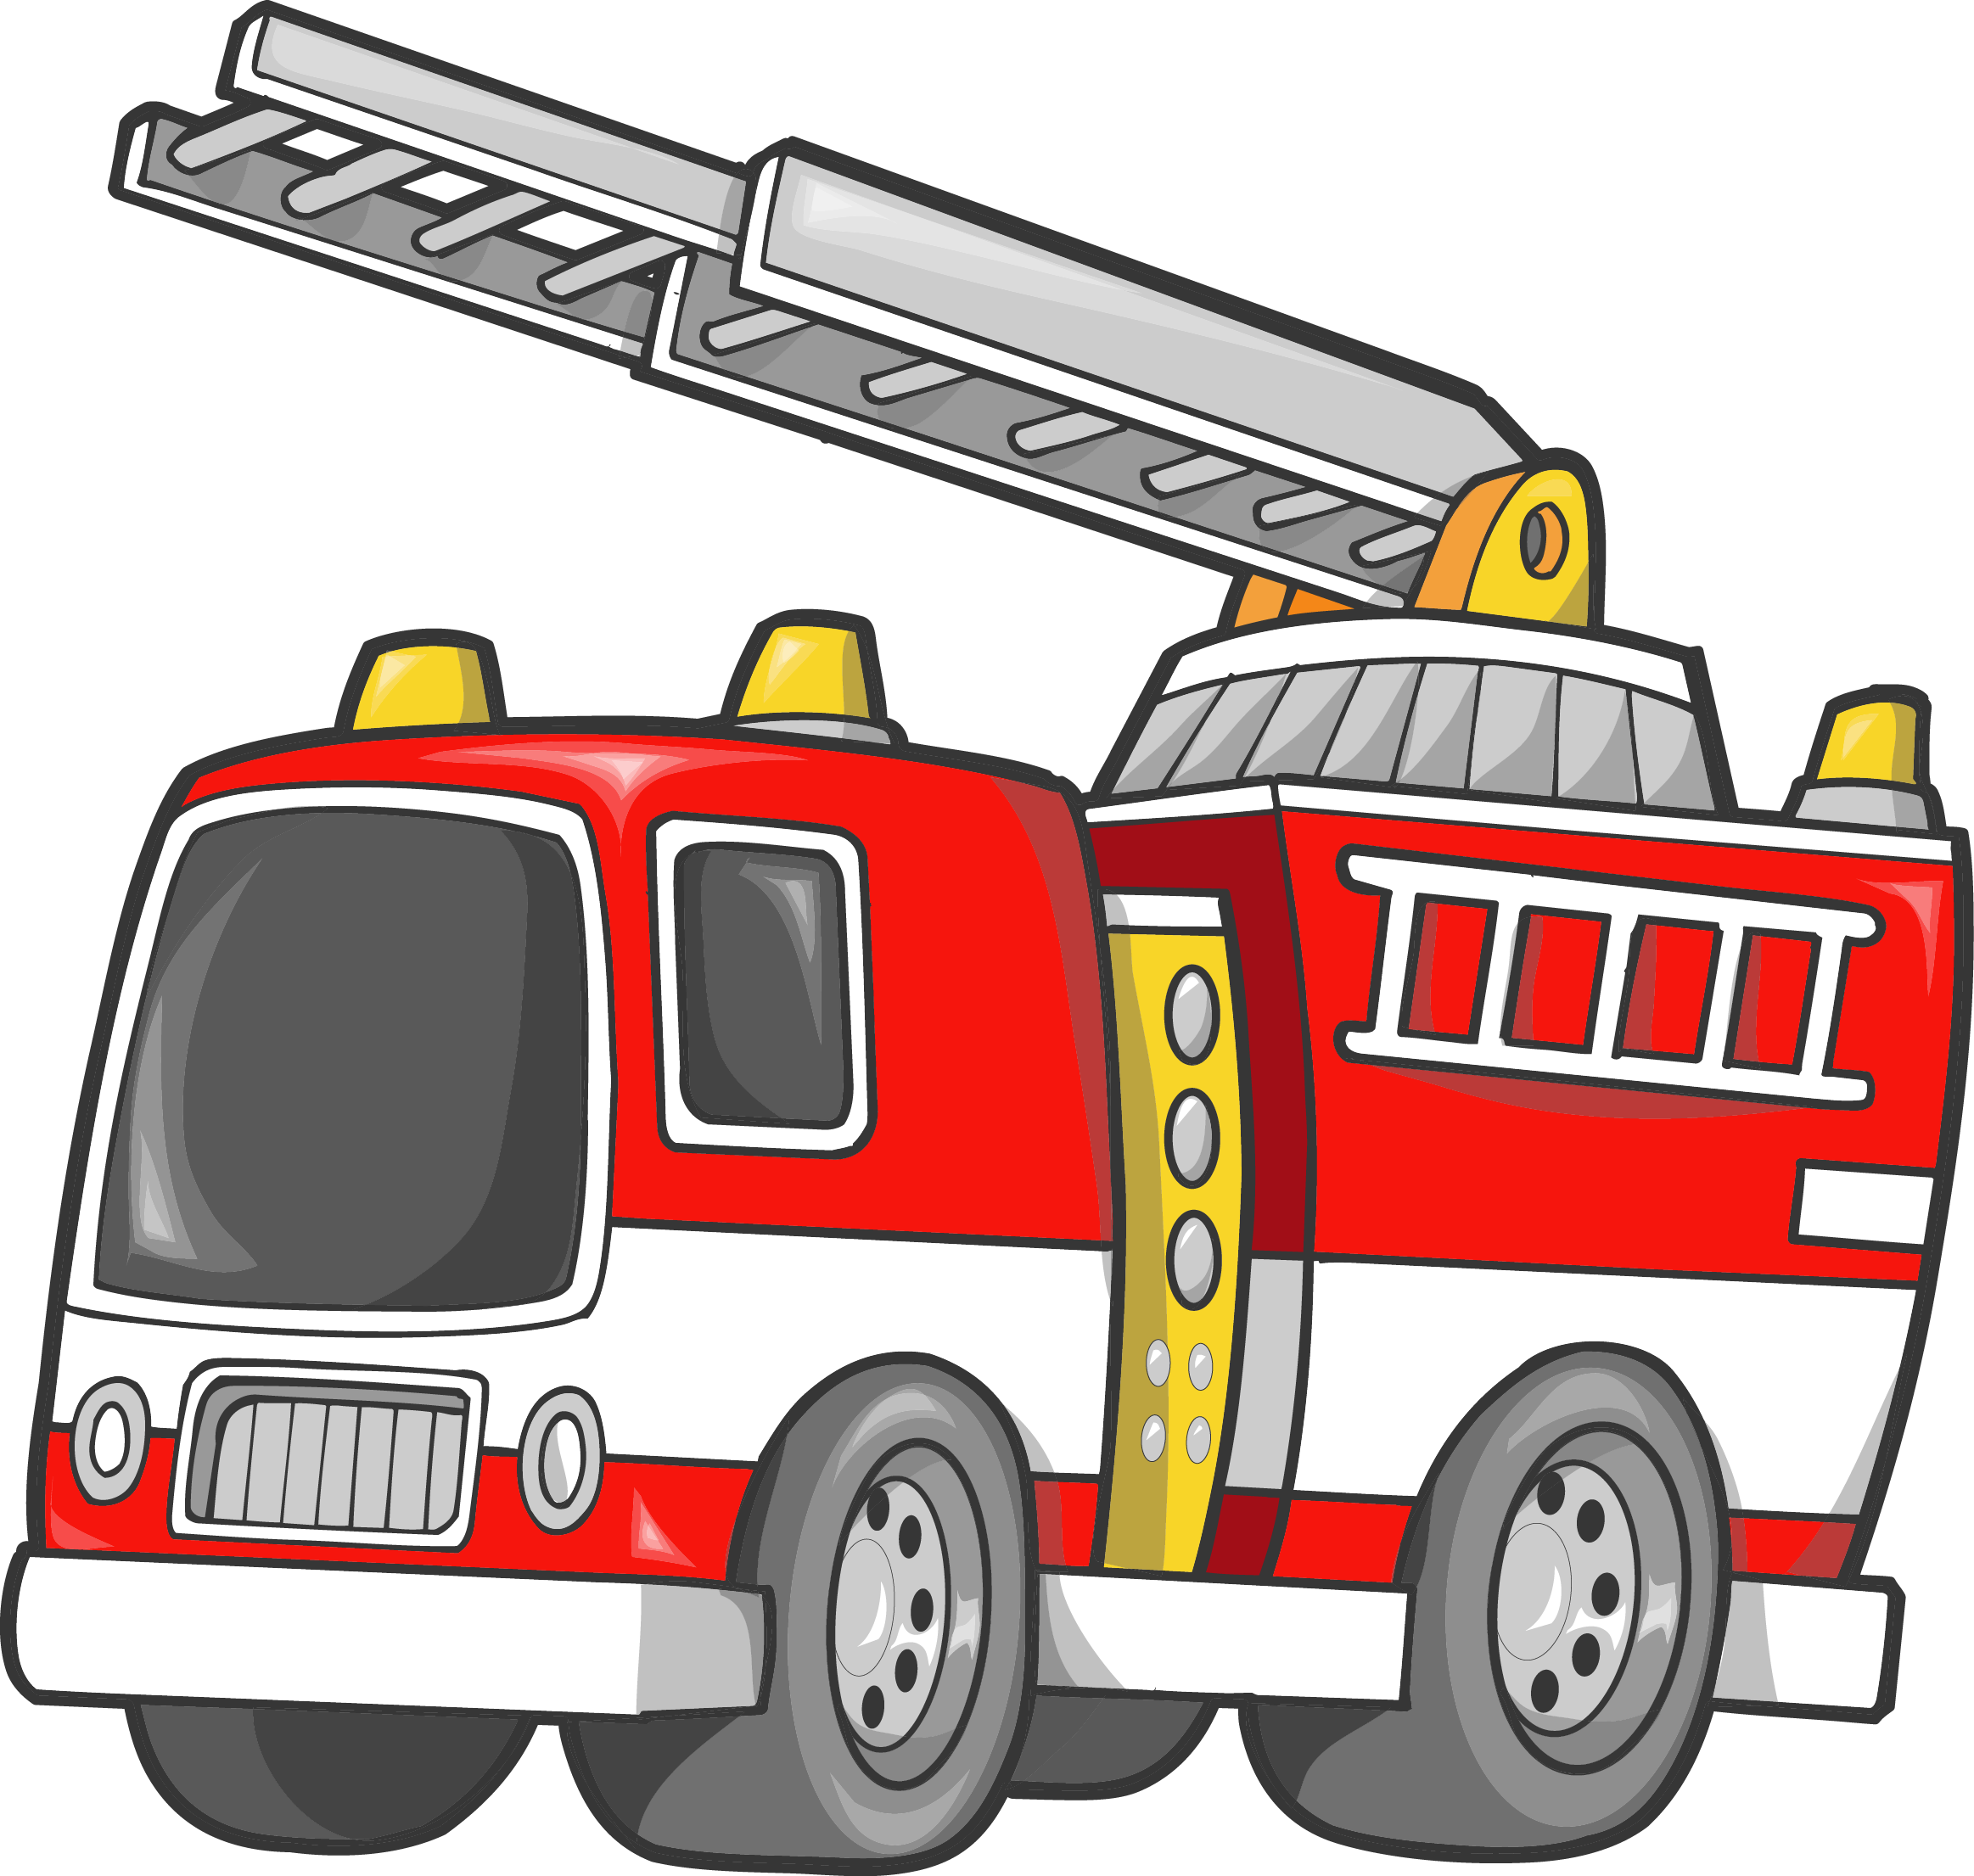 Car fire firefighter truck. Engine clipart vehicle engine